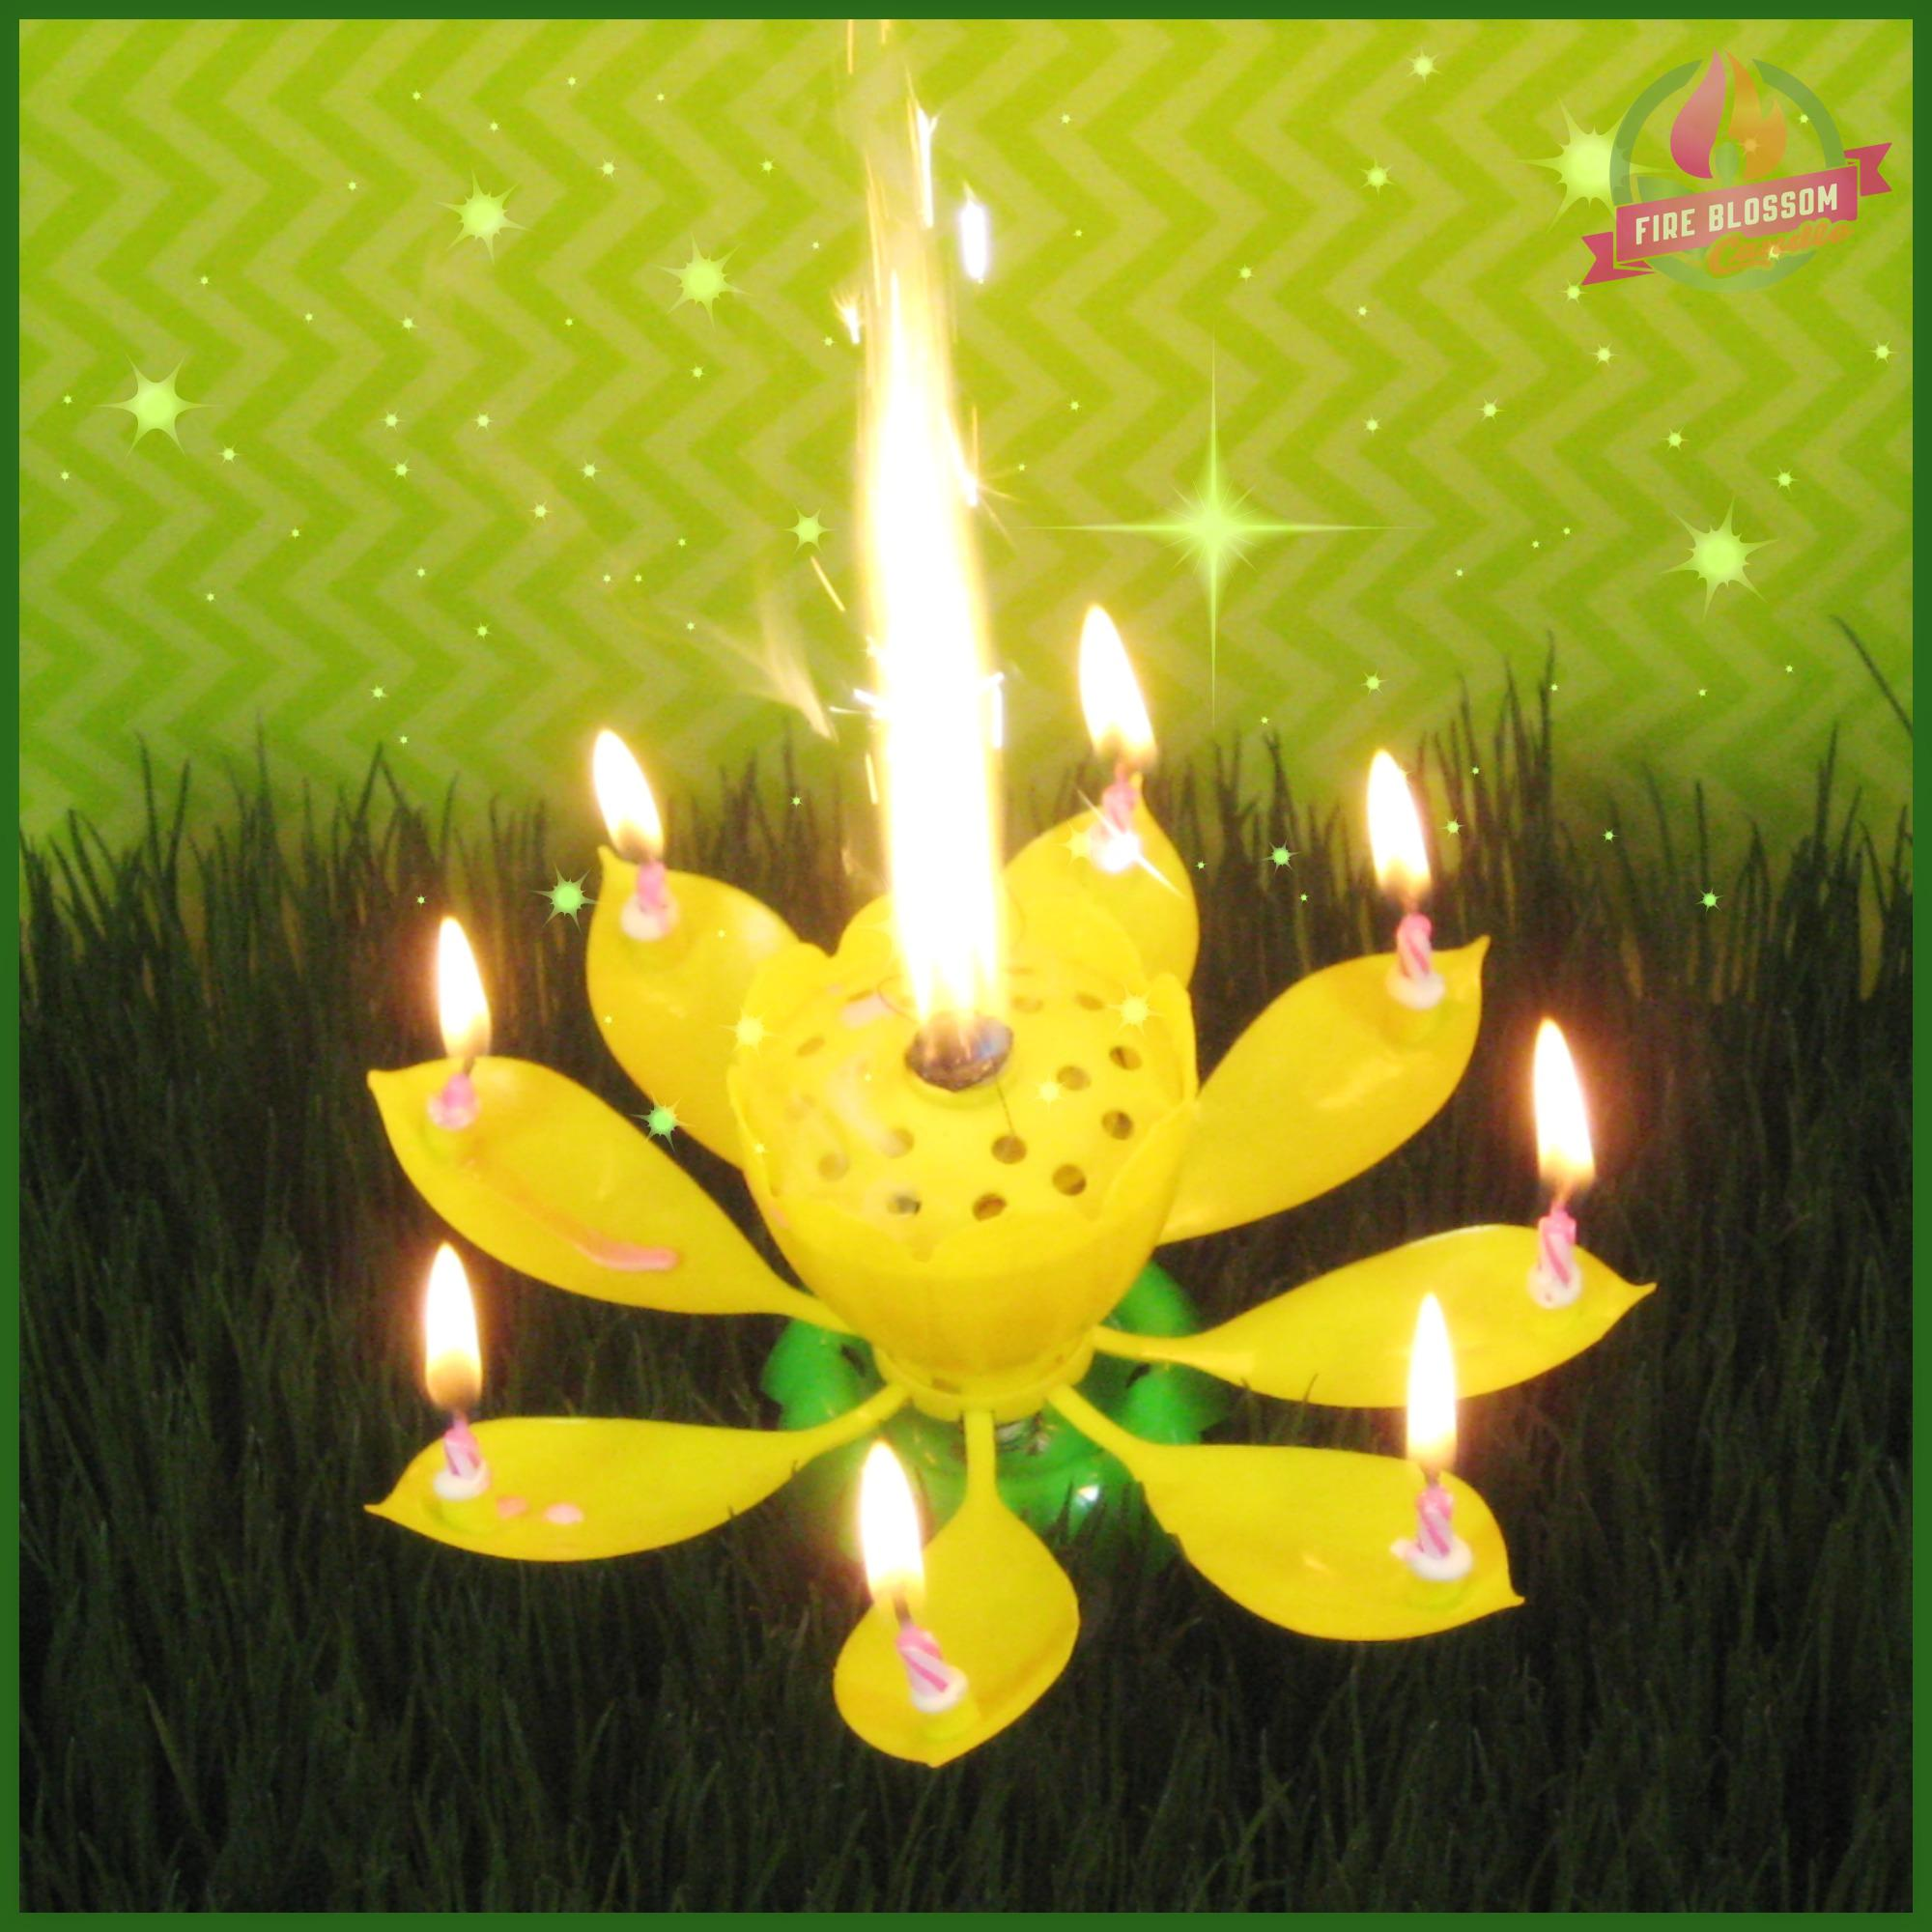 Fire Blossom Candle